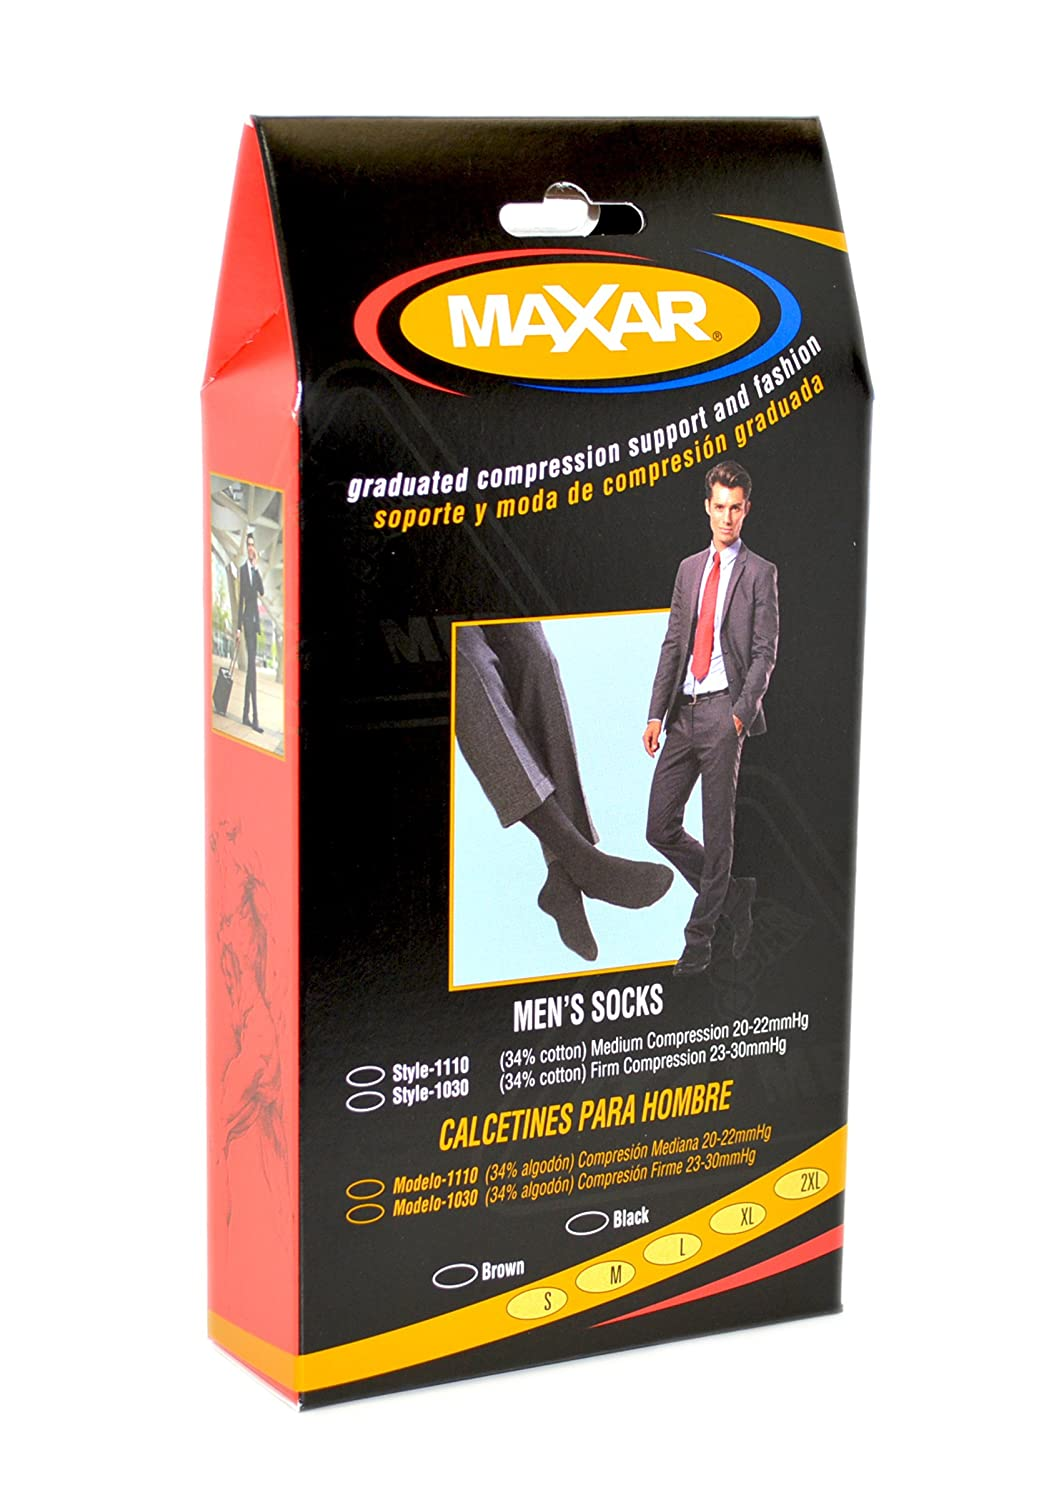 Amazon.com: MAXAR Mens Trouser Support Socks (20-22 mmHg) Black, Medium: Health & Personal Care